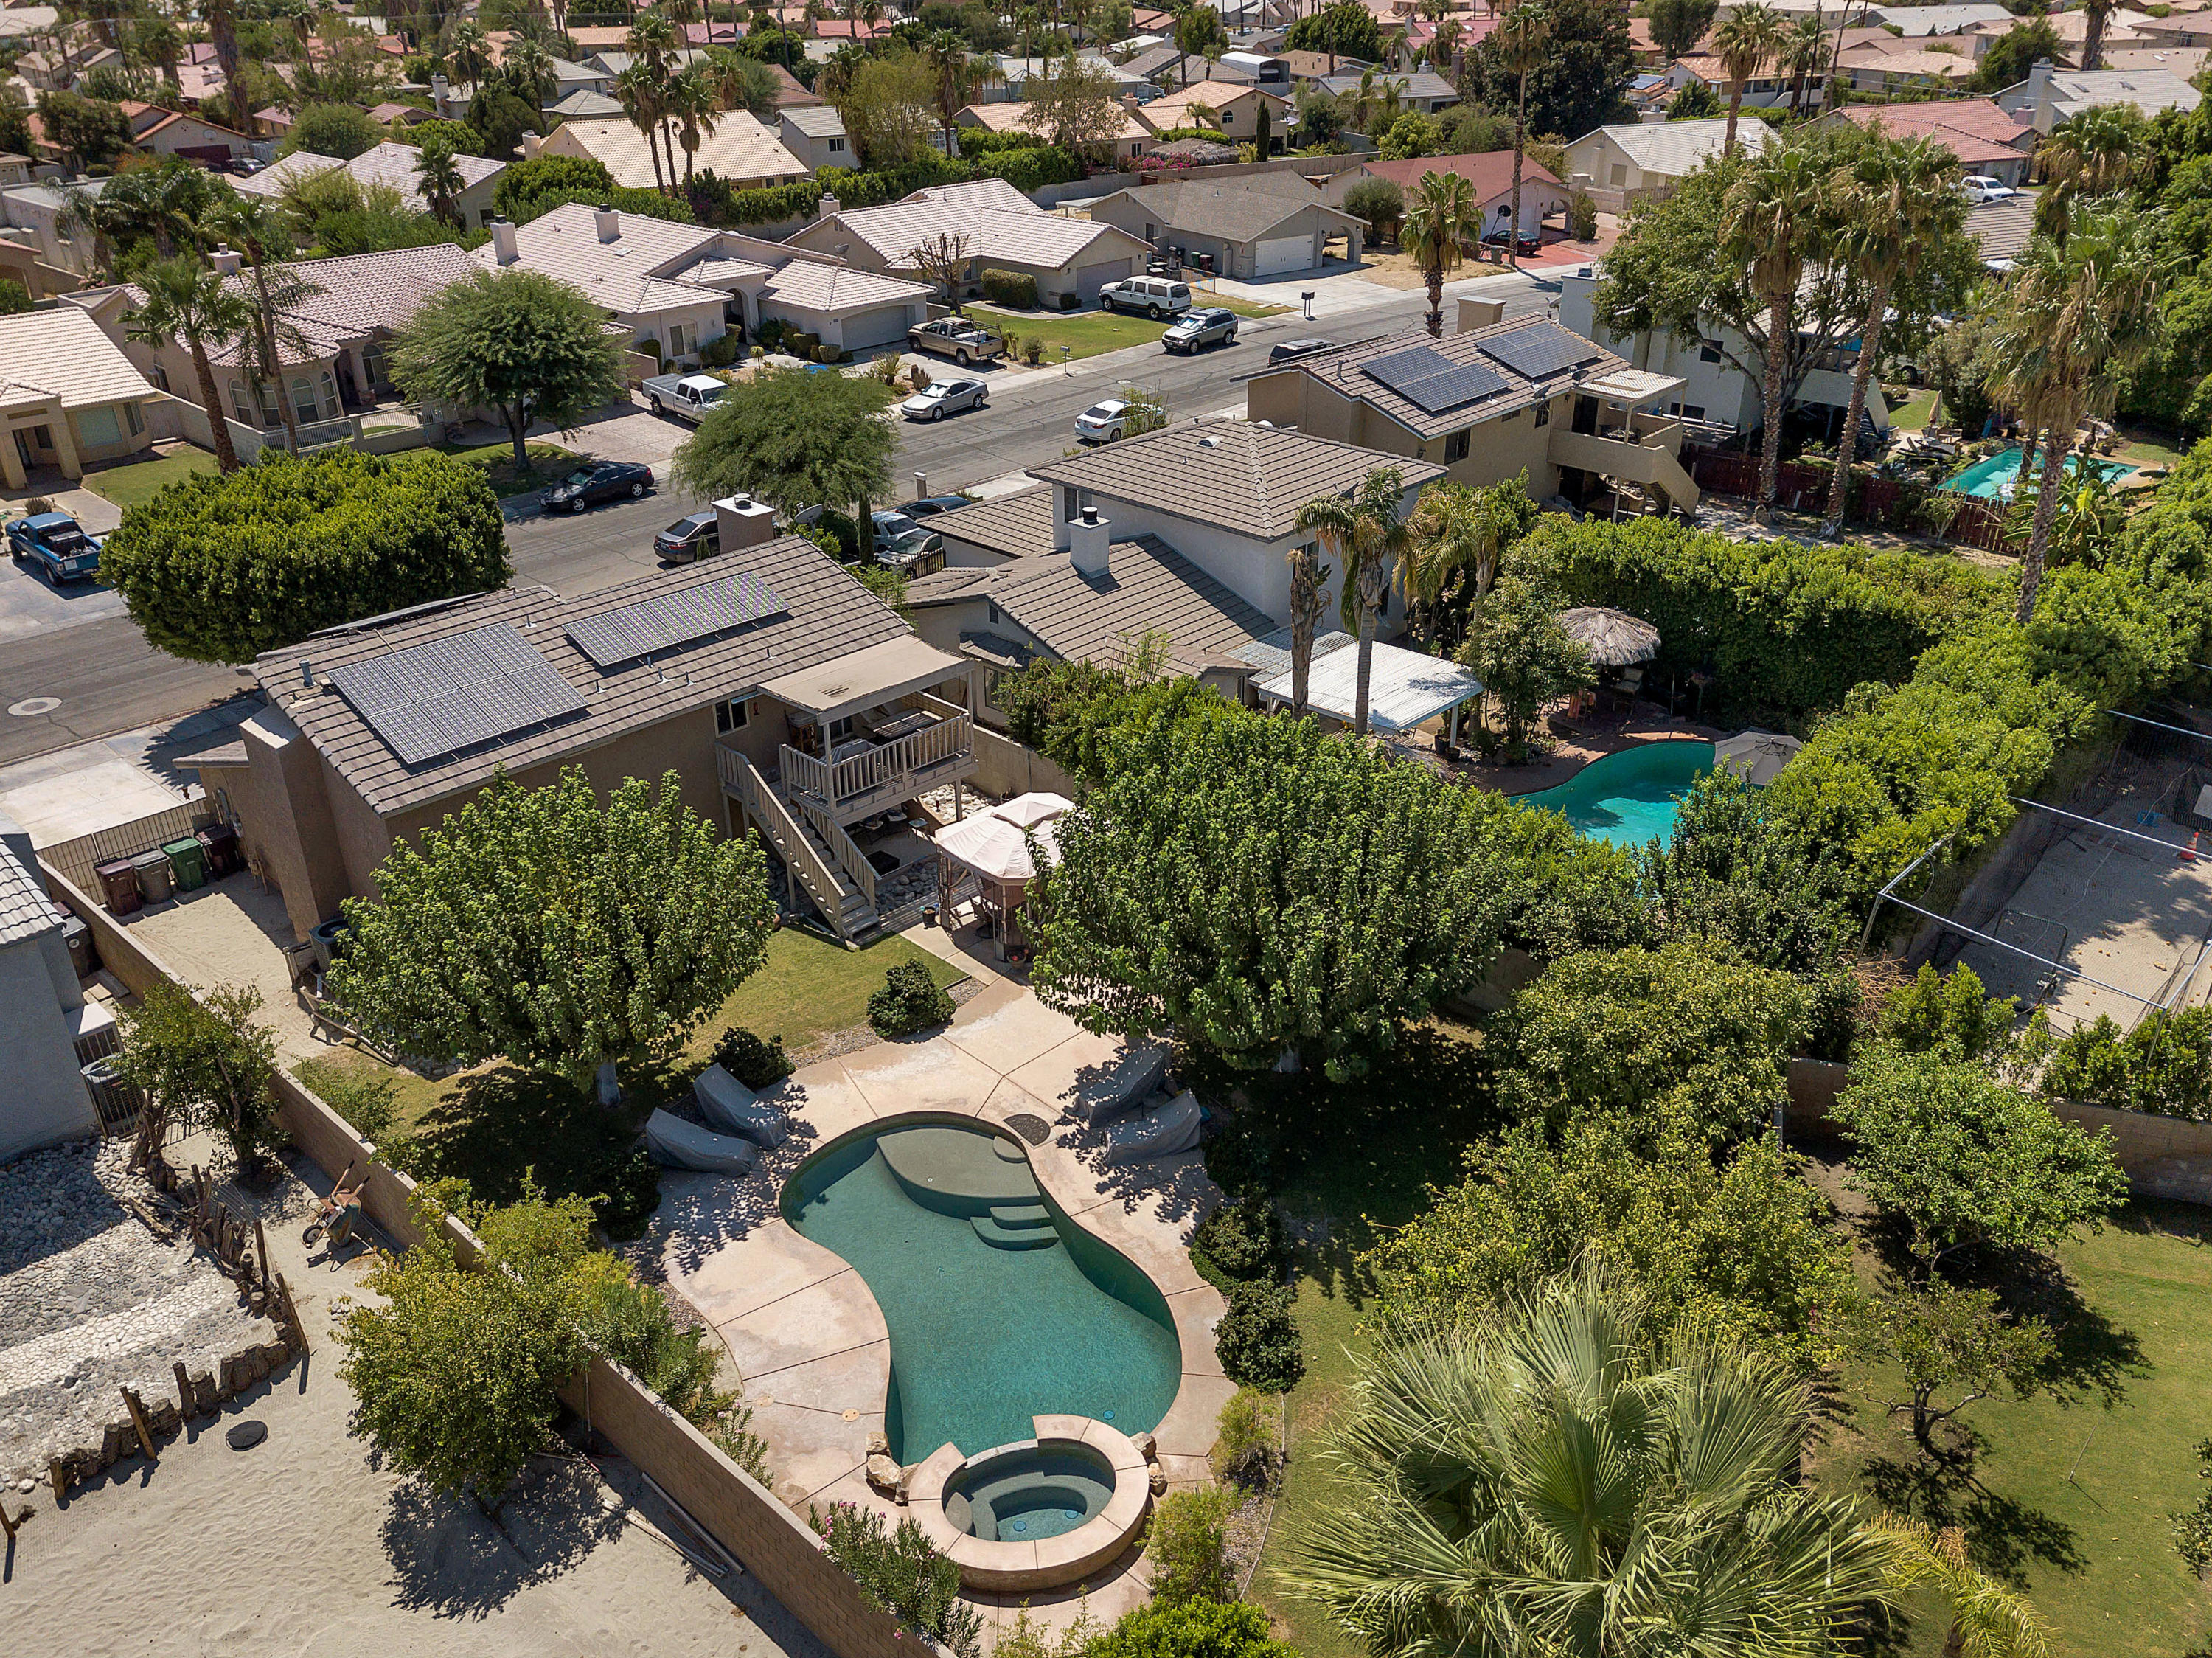 68160 Marina Road, Cathedral City, California 92234, 3 Bedrooms Bedrooms, ,2 BathroomsBathrooms,Residential,Sold,68160 Marina Road,219030114